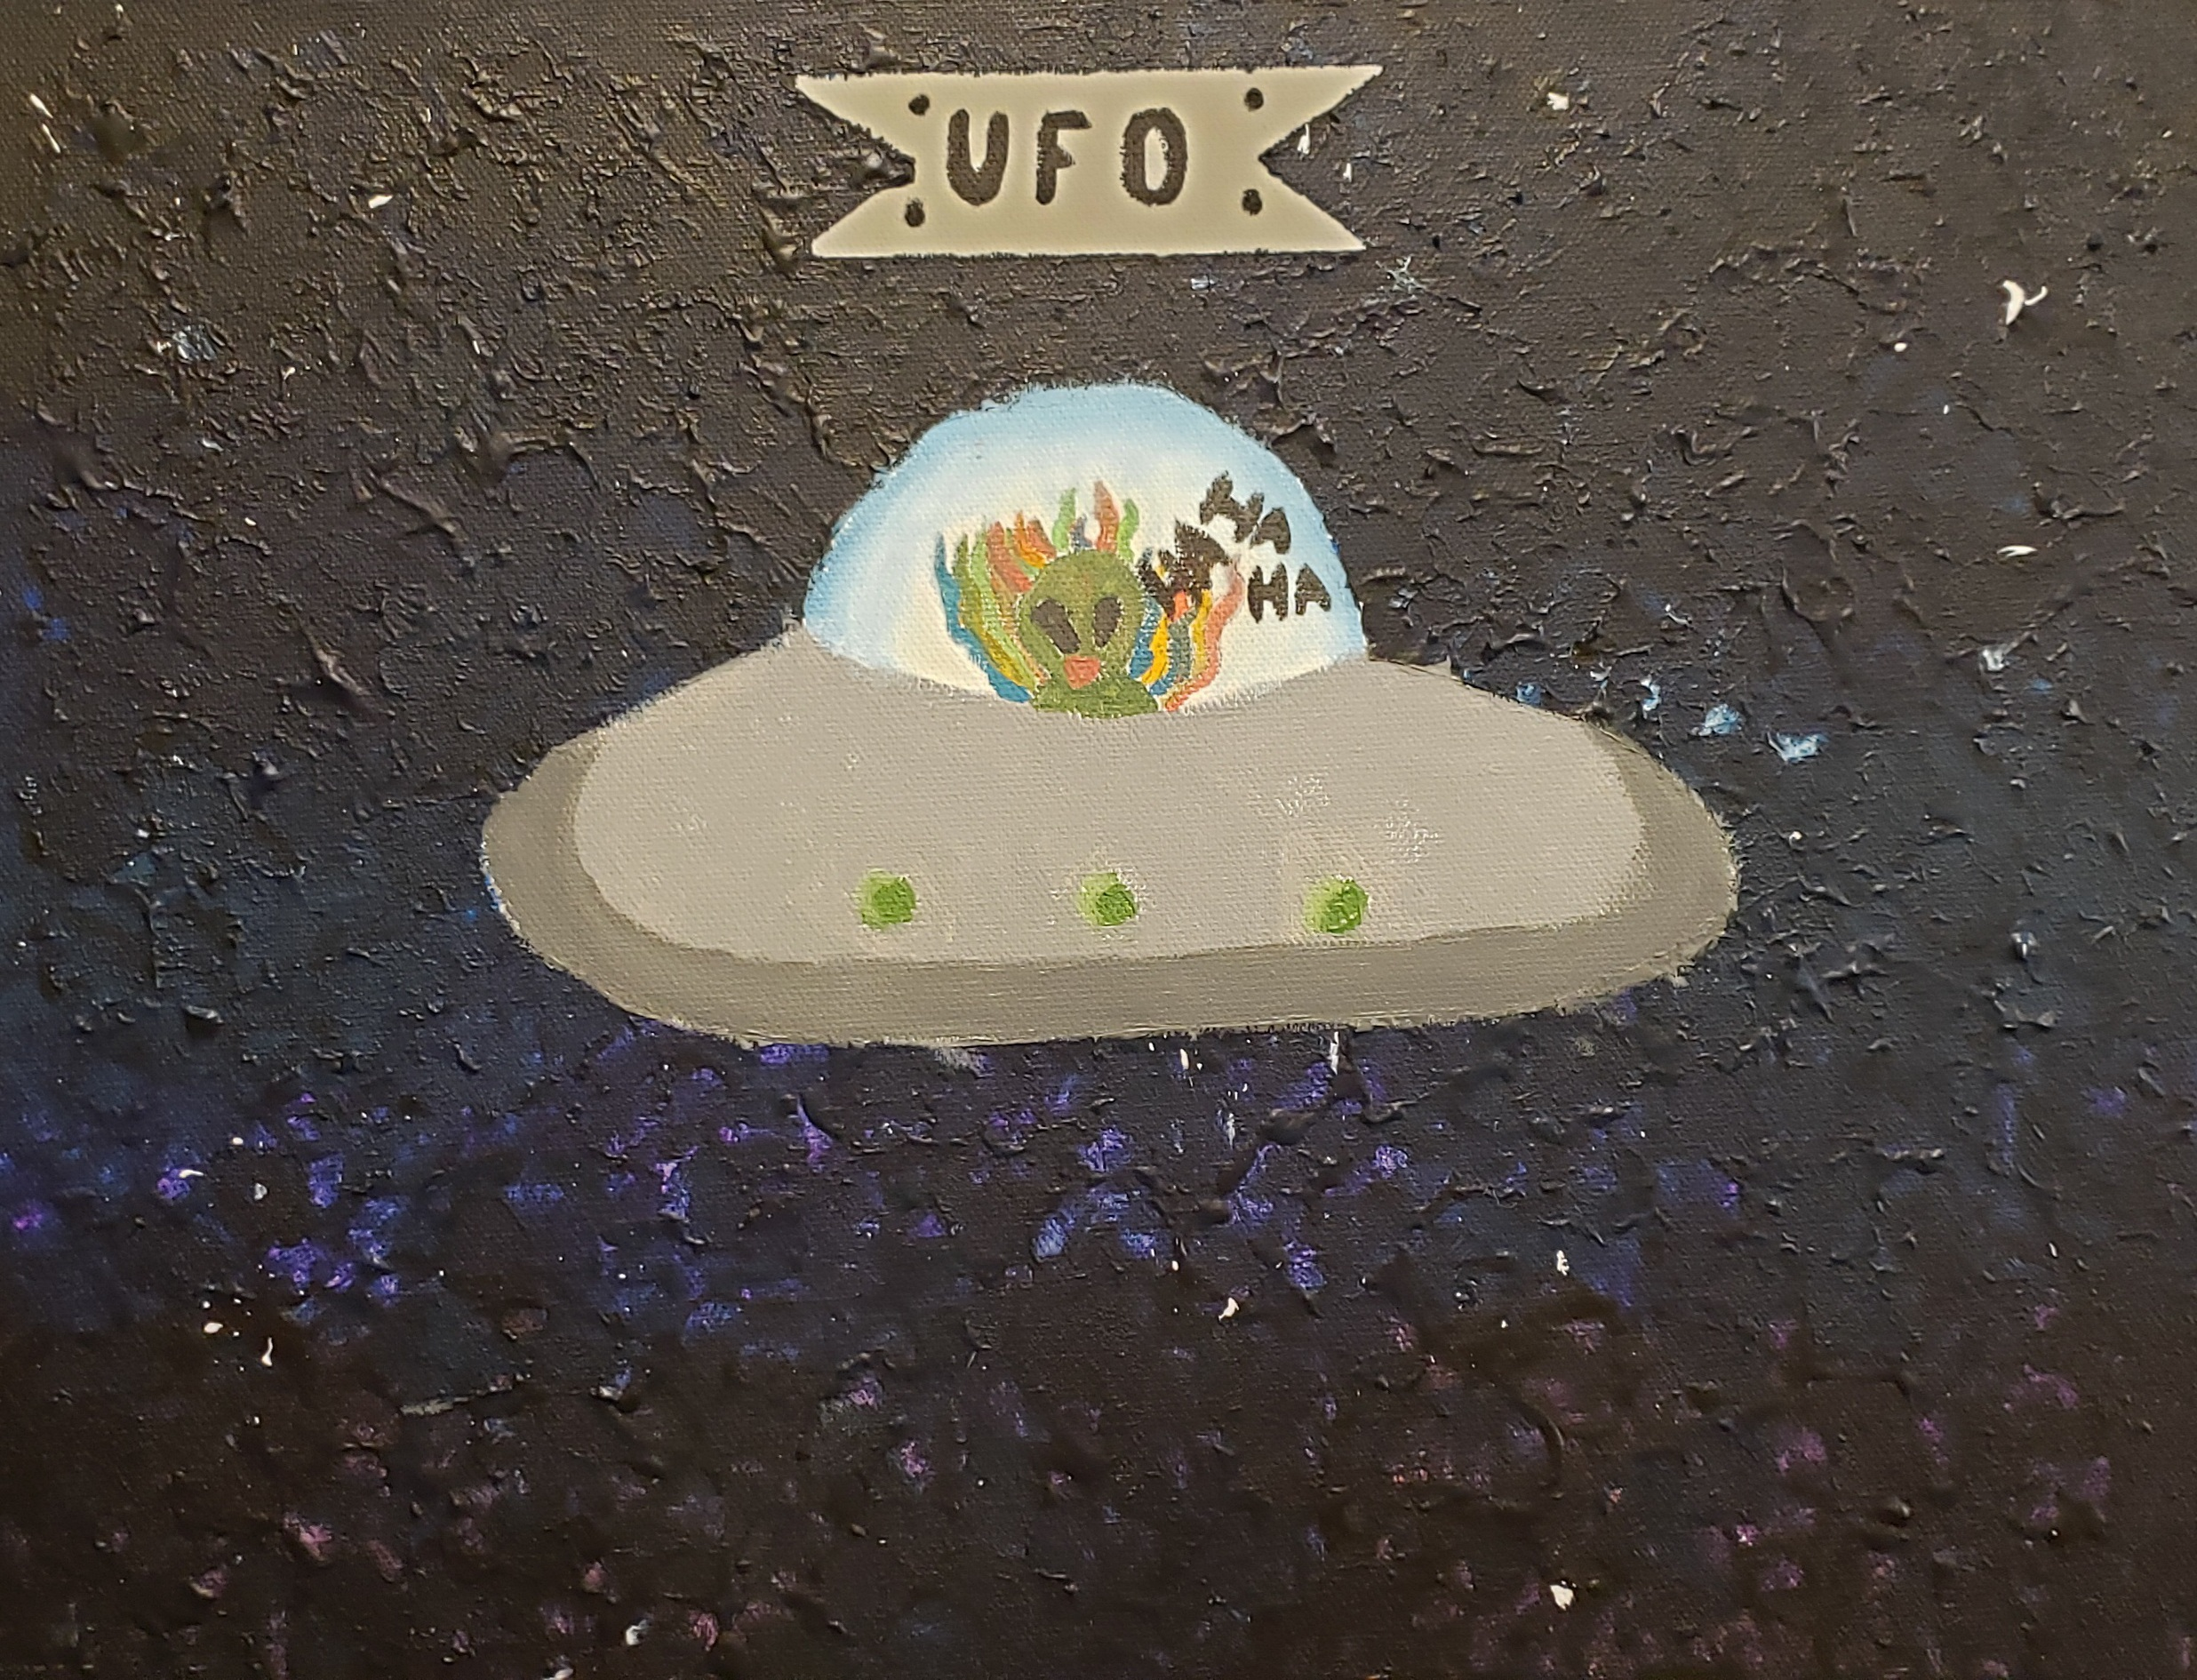 A canvas is painted in deep blues and black so thick that the ripples are evident from ambient lighting. The painting has a texture that is weighty and immediately present. In the center of the canvas is a gray flying saucer with a clear dome. From within the dome a green alien is wreathed in multiple shades of red, green, blue, and orange. The alien is laughing, as evidenced by the speech bubbles next to it saying ha ha ha. At the top of the painting is a ribbon that says UFO.